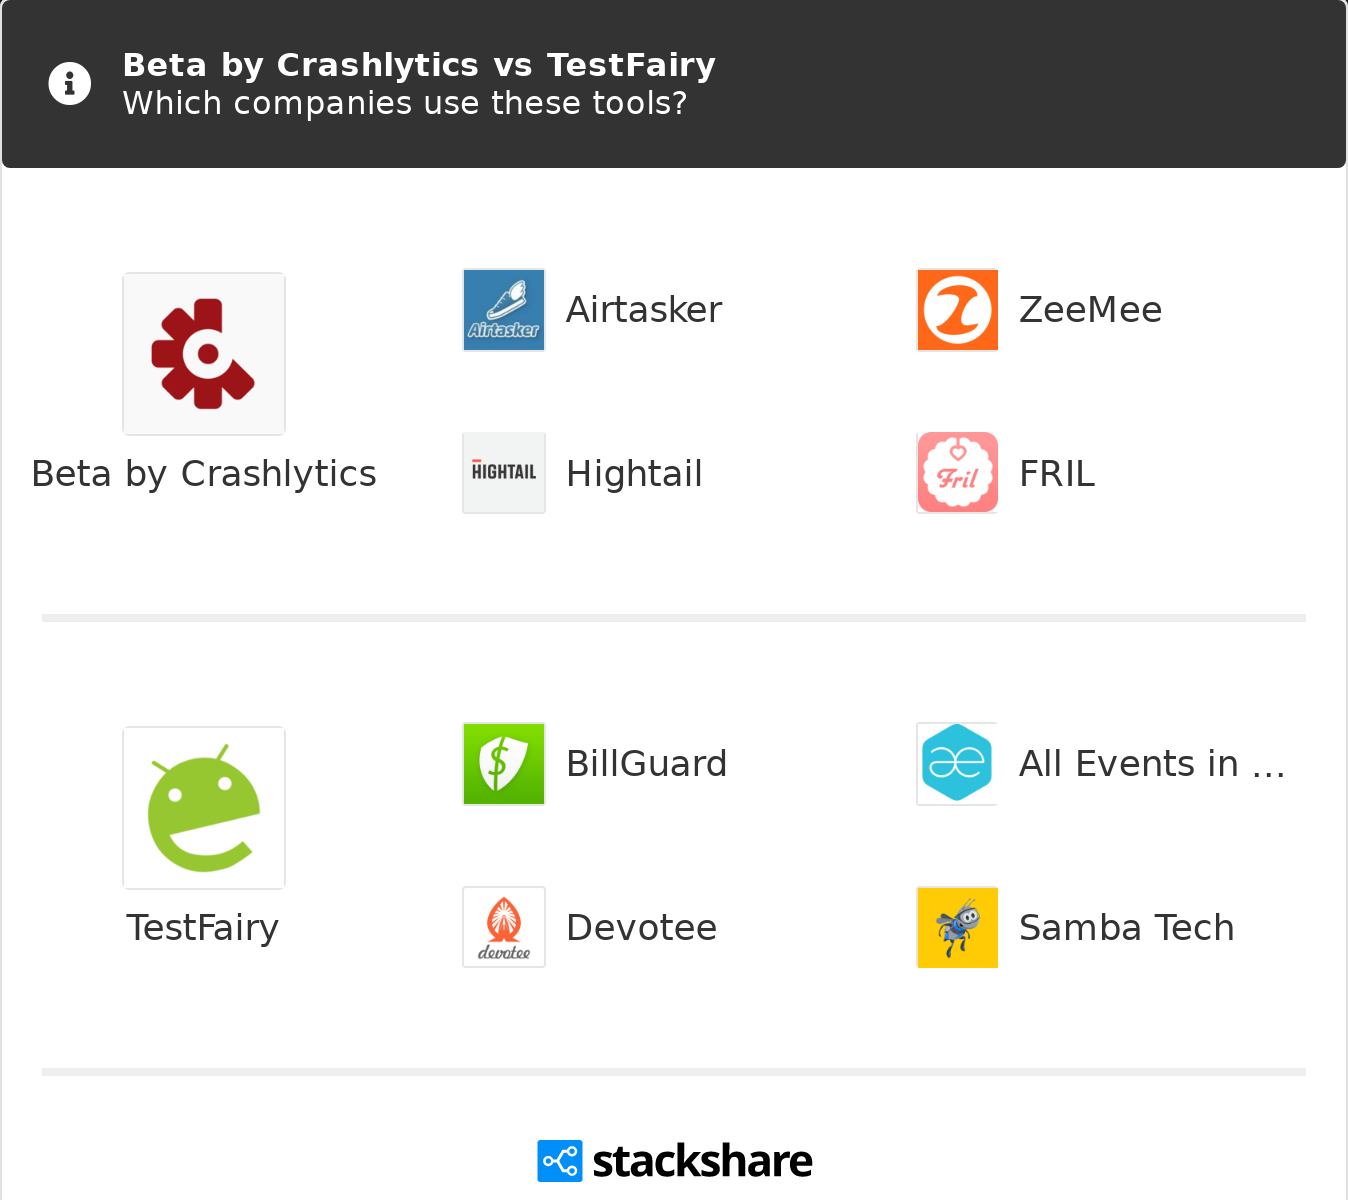 Beta by Crashlytics vs TestFairy | What are the differences?